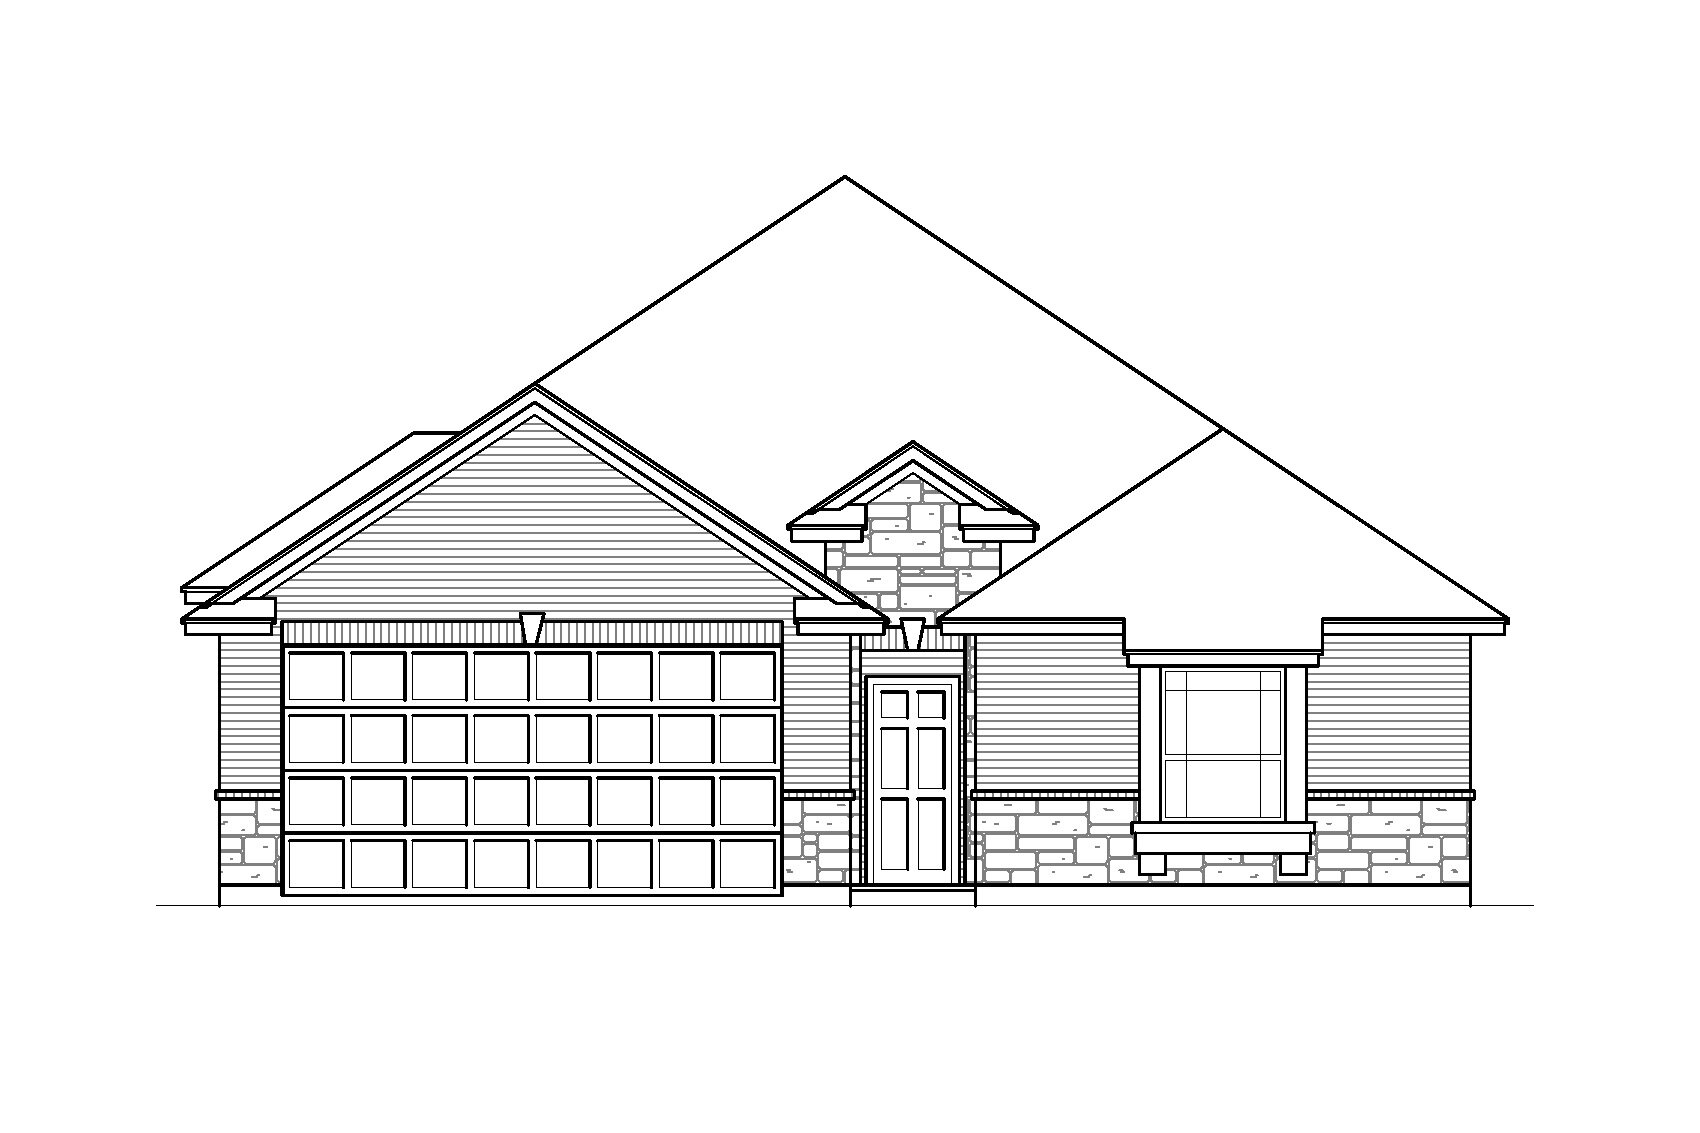 Bowie - 1690 Square Feet3-4 Bedrooms | 2 BathroomsStarting at $237,000